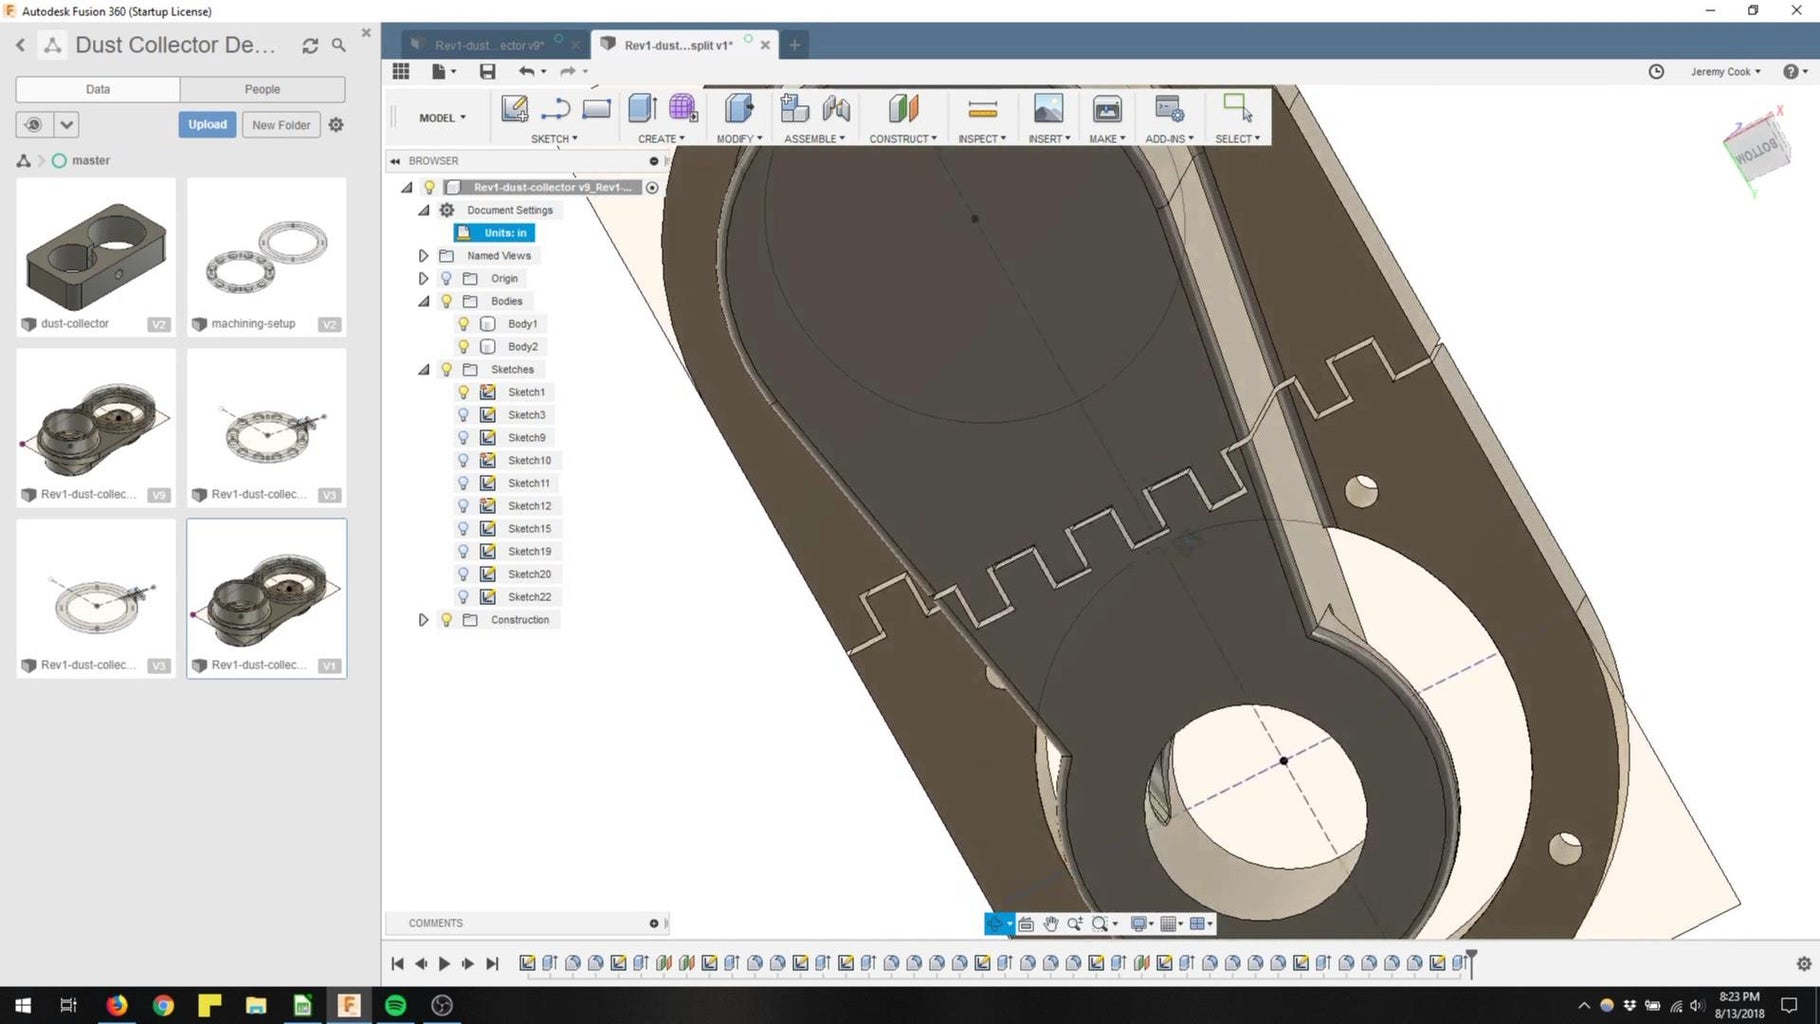 Components Needed and Print Files